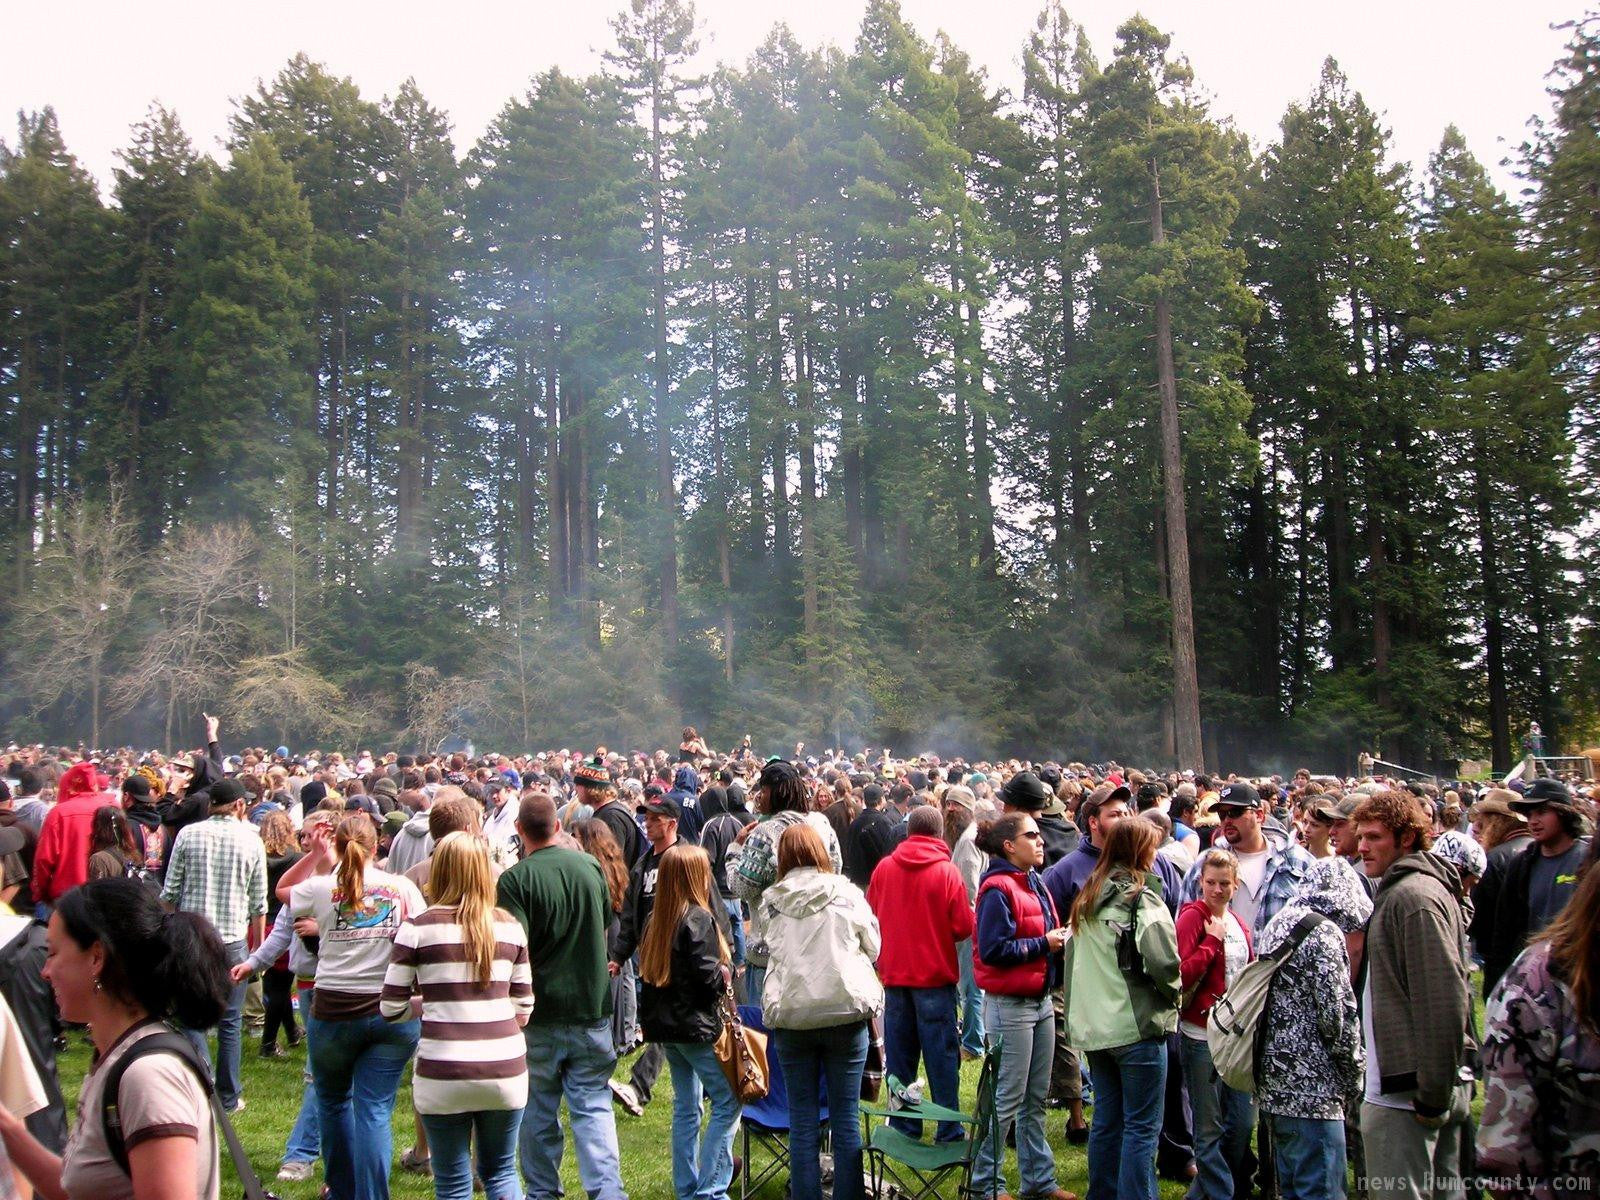 9th Circuit says man can sue Arcata, CA over good, old-fashioned Pot Party